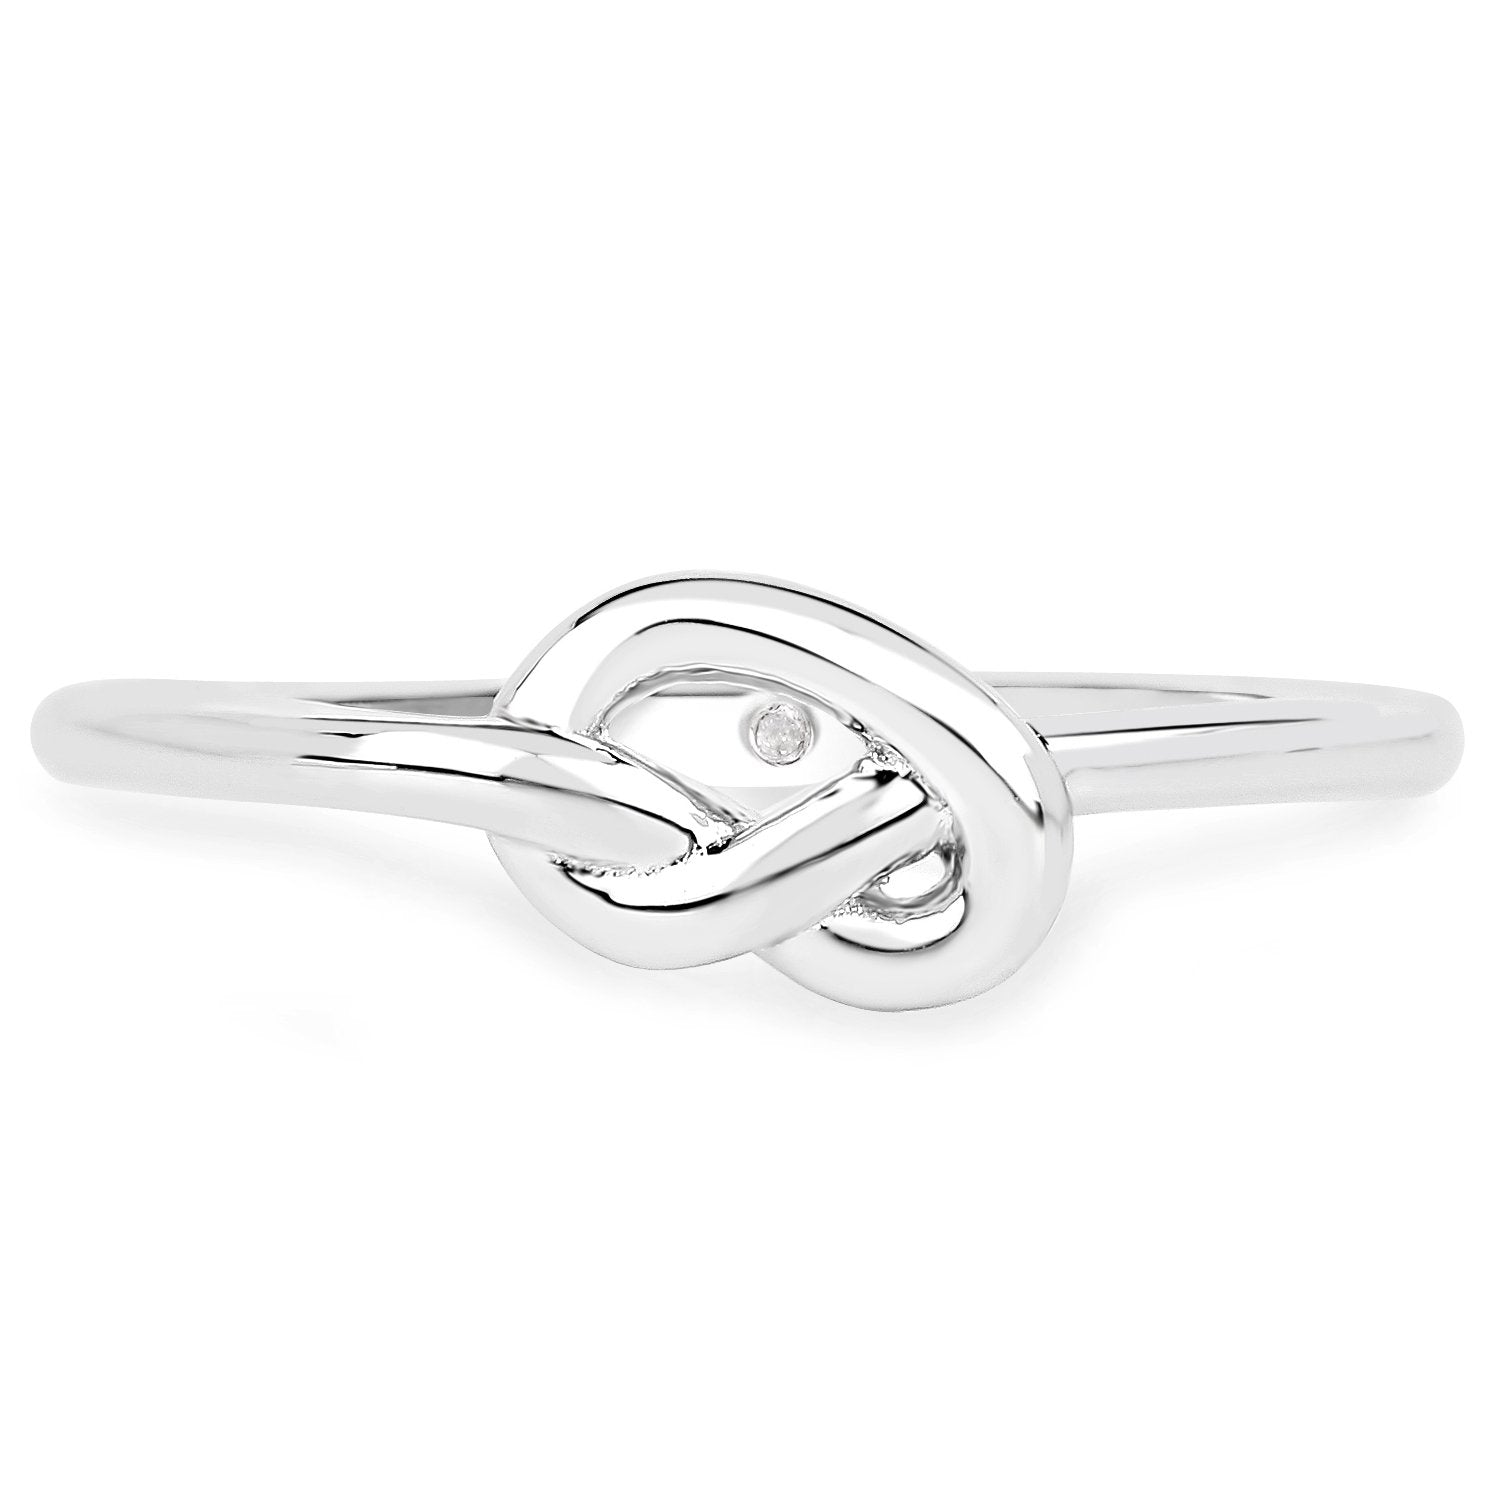 LoveHuang 0.01 Carats Genuine White Diamond (I-J, I2-I3) Knot Ring Solid .925 Sterling Silver With Rhodium Plating